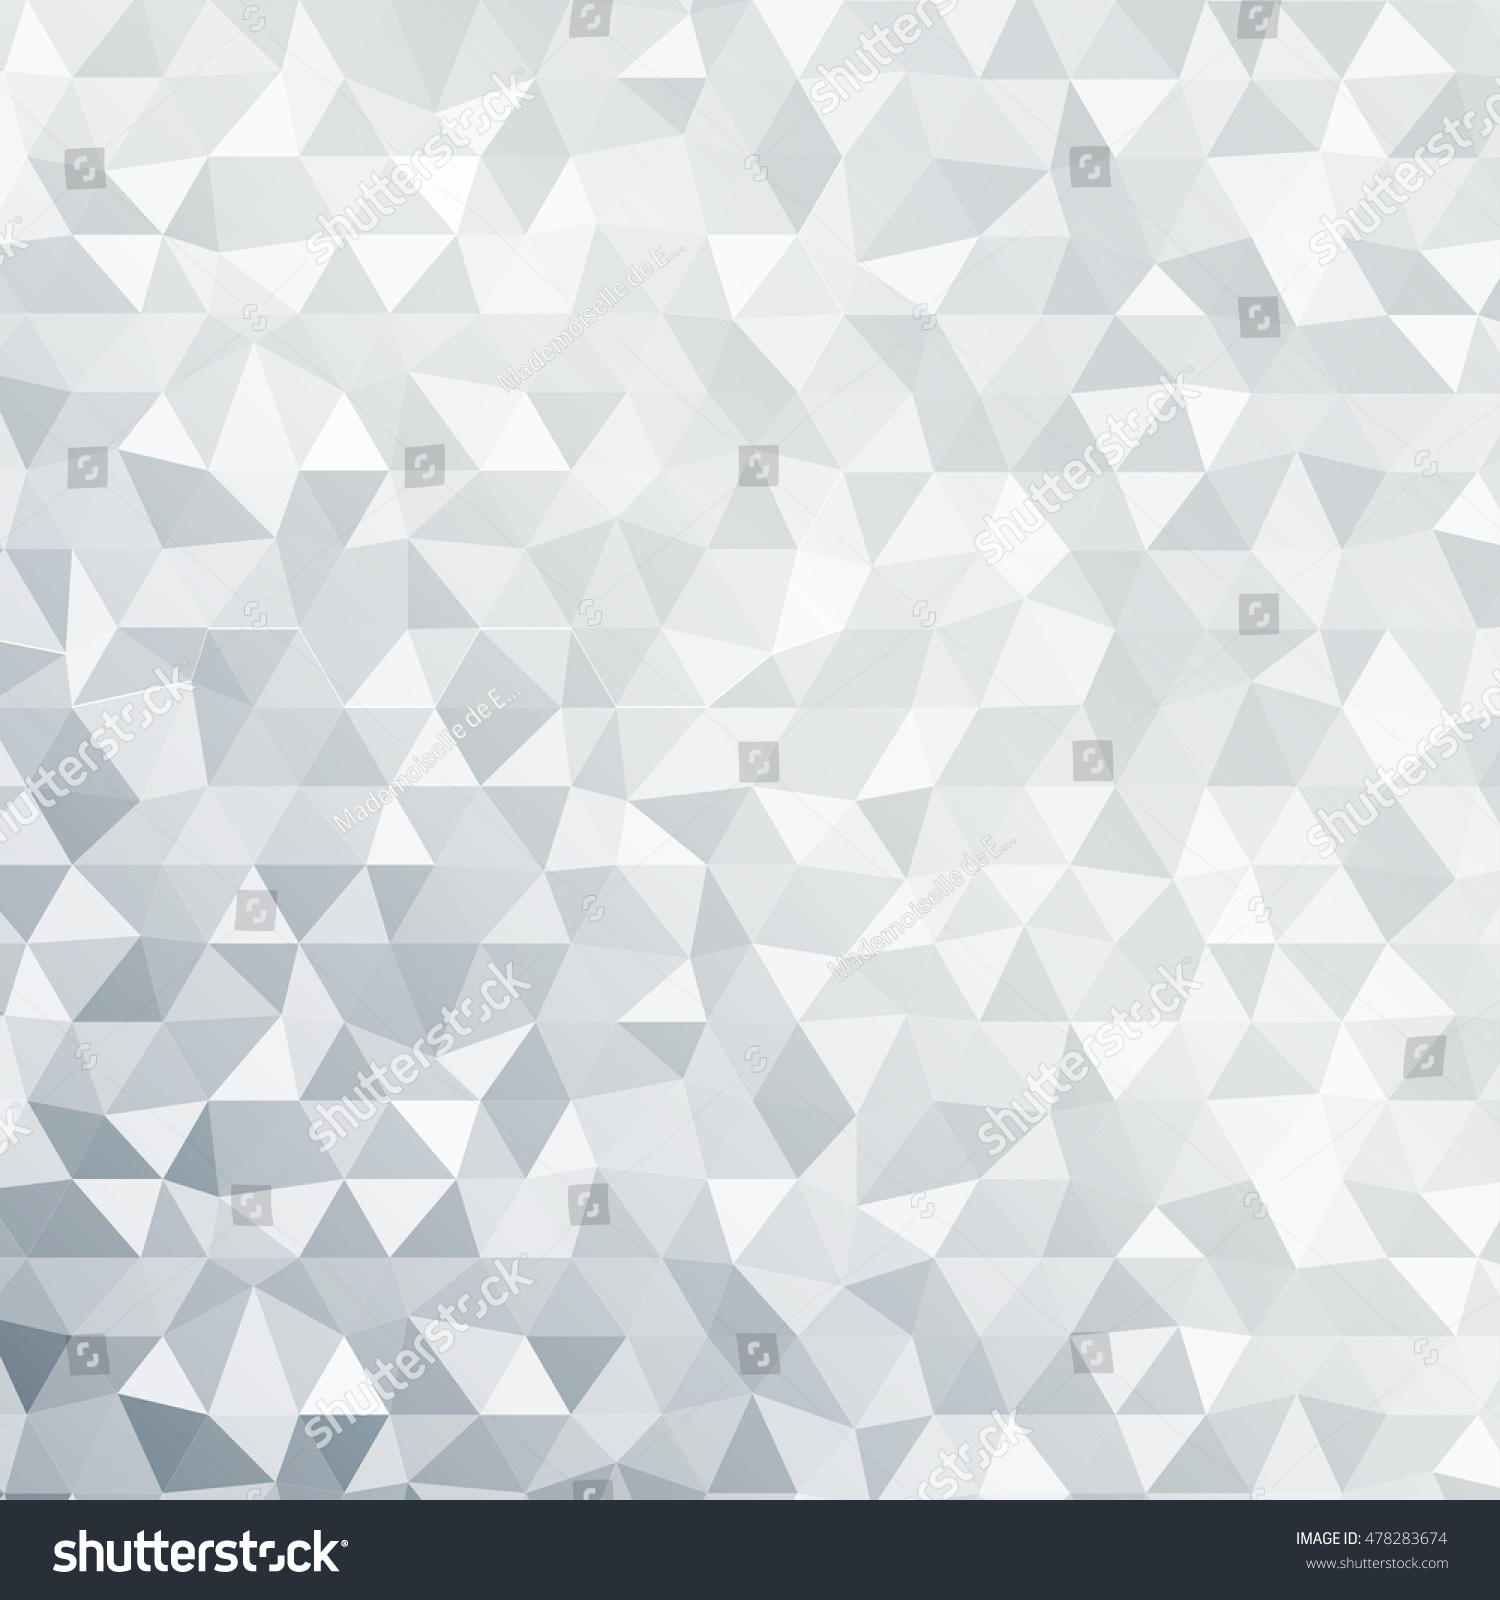 royalty polygon background silver color stock polygon background silver color vector illustration square banner to implement your design ideas business subjects successful presentations